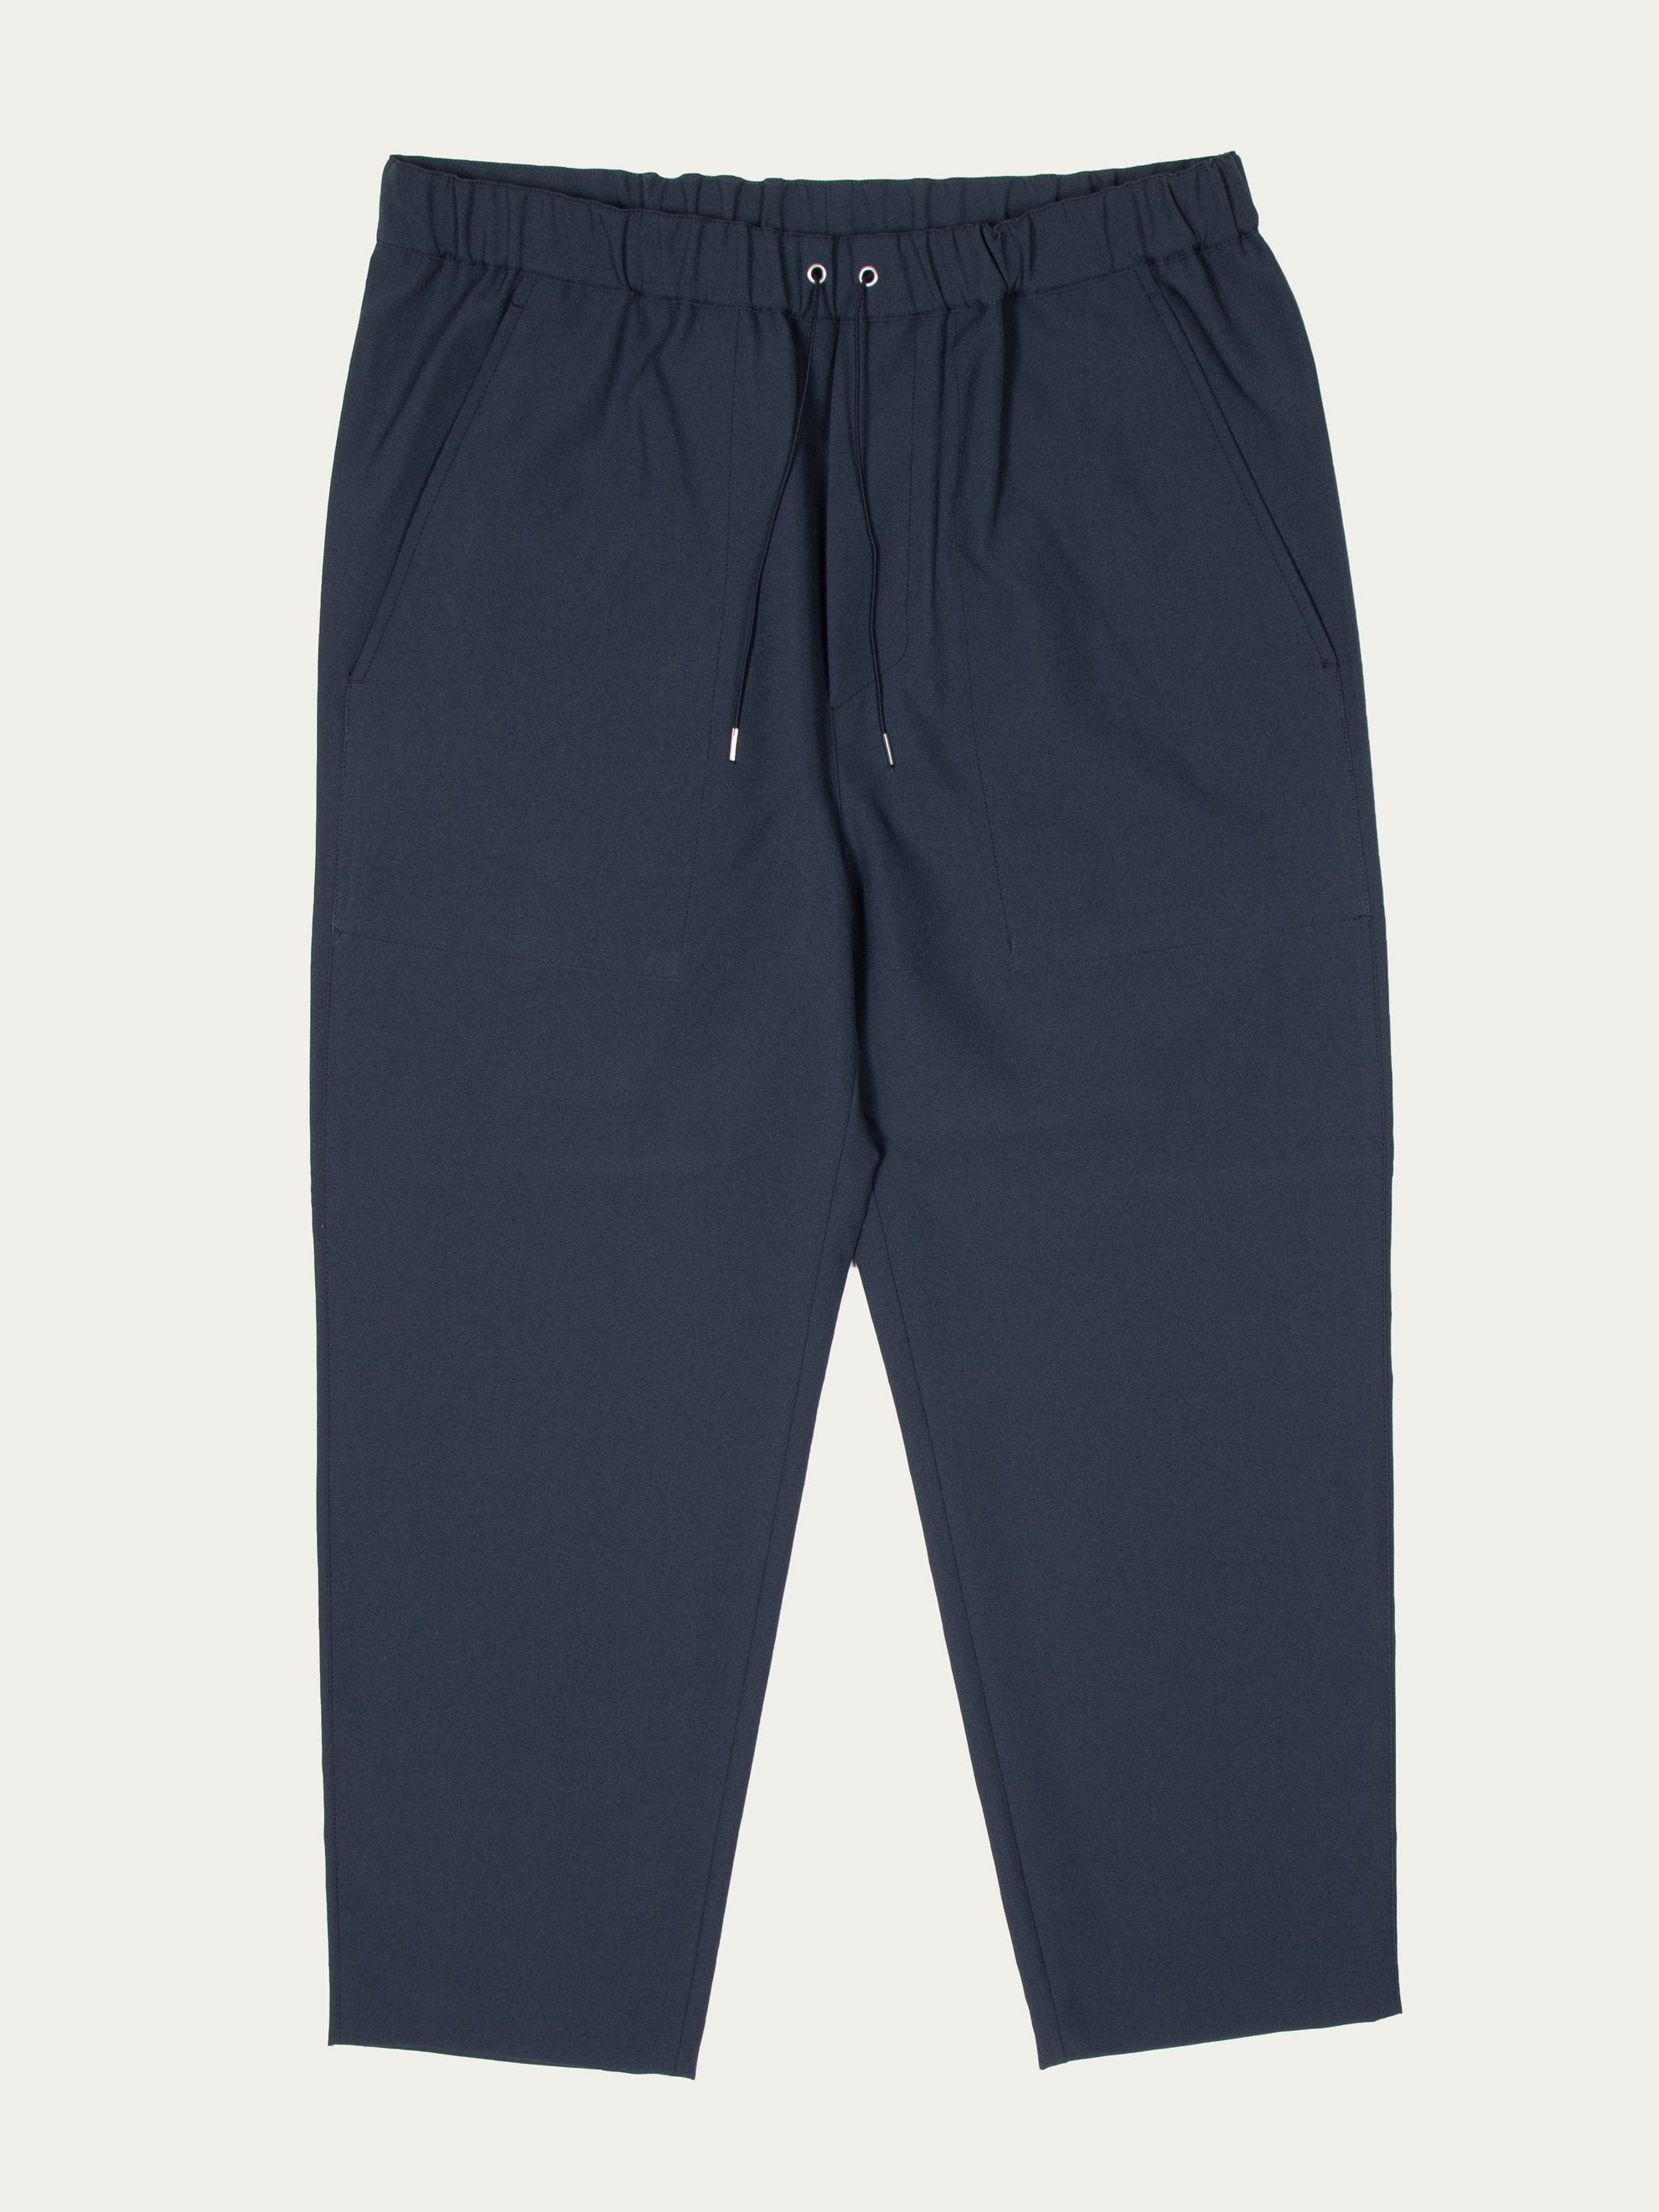 Charcoal Blue Drawcord Pant 1